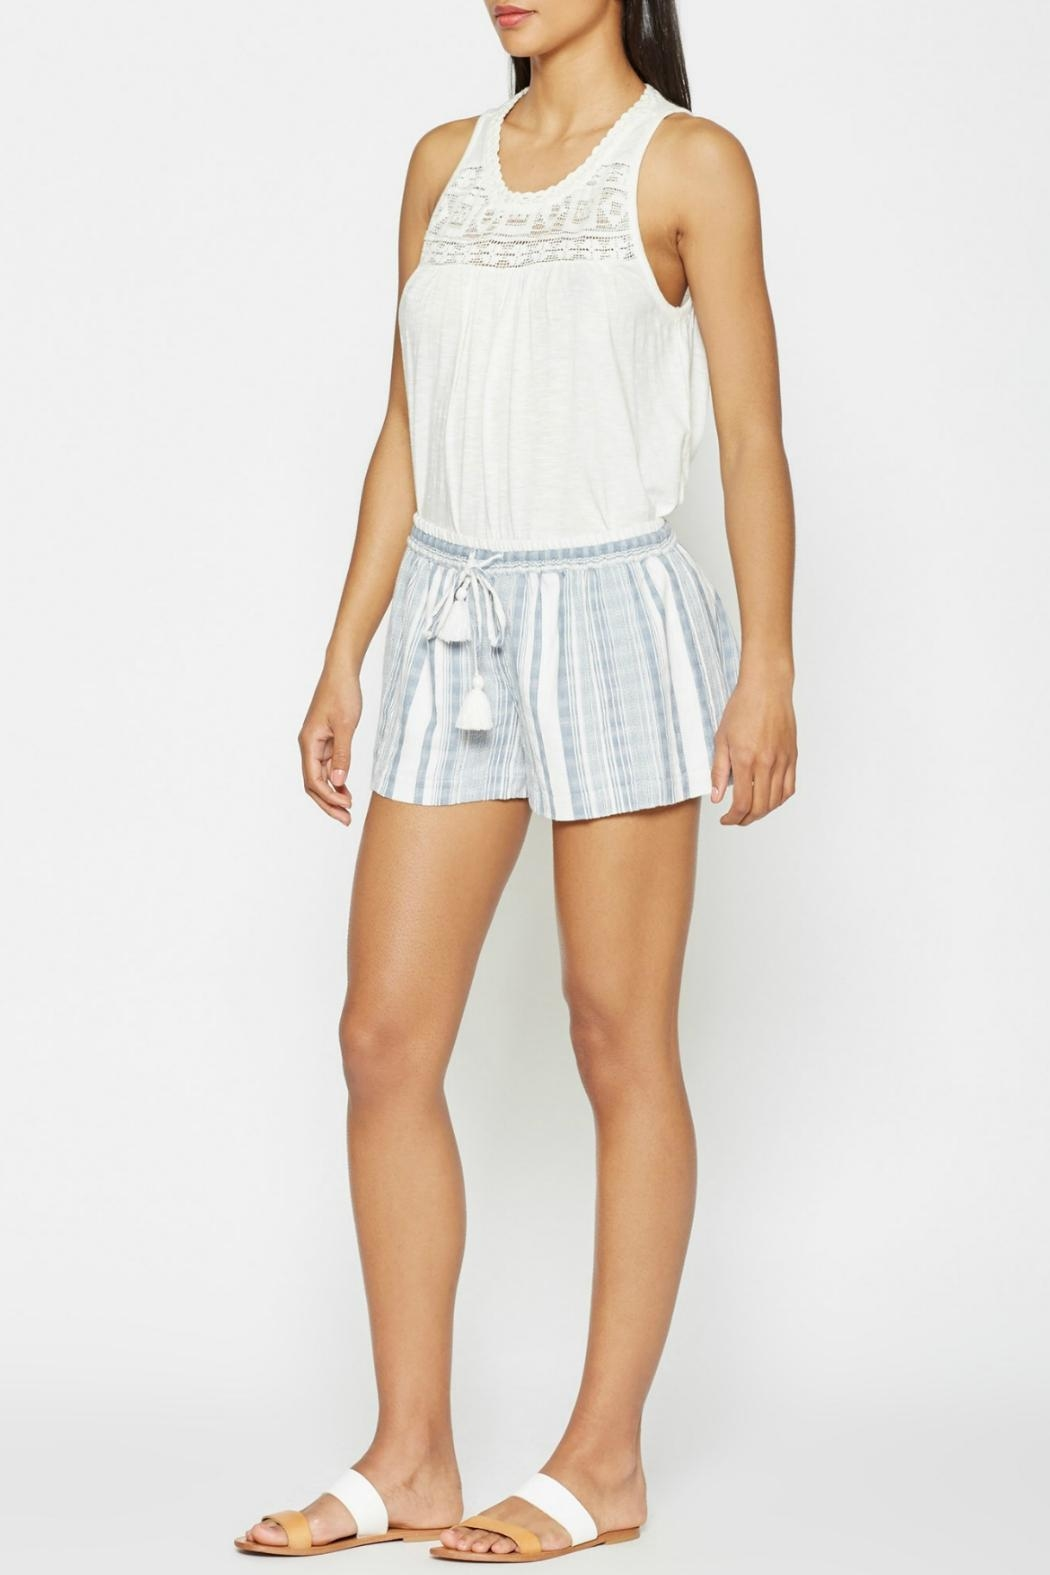 Joie Striped Comfy Shorts - Main Image